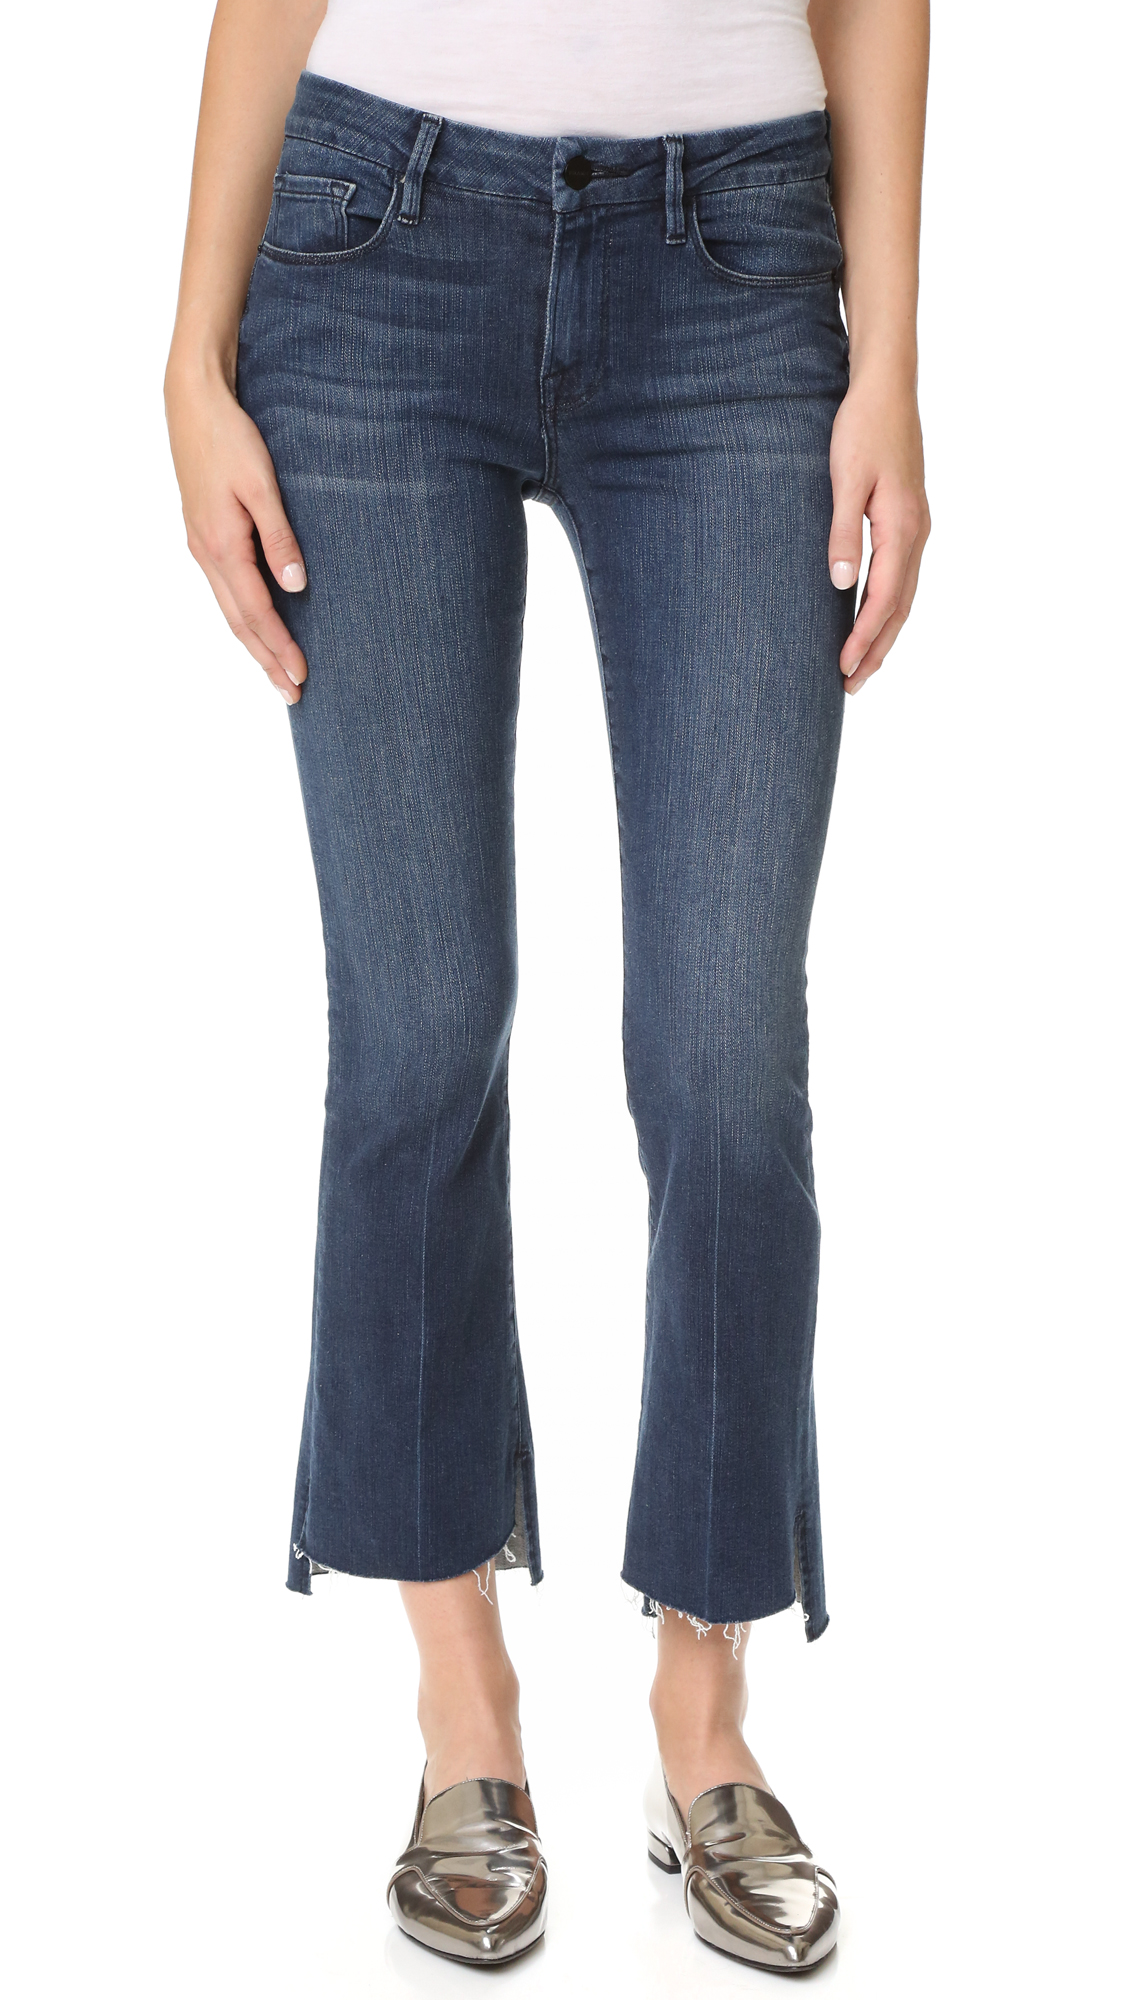 Short vents relax the raw, uneven hems on these cropped FRAME jeans. Fading and whiskering lend a broken in effect. 5 pocket styling. Button closure and zip fly. Fabric: Lightweight super stretch denim. 93% cotton/5% polyester/2% elastane. Wash